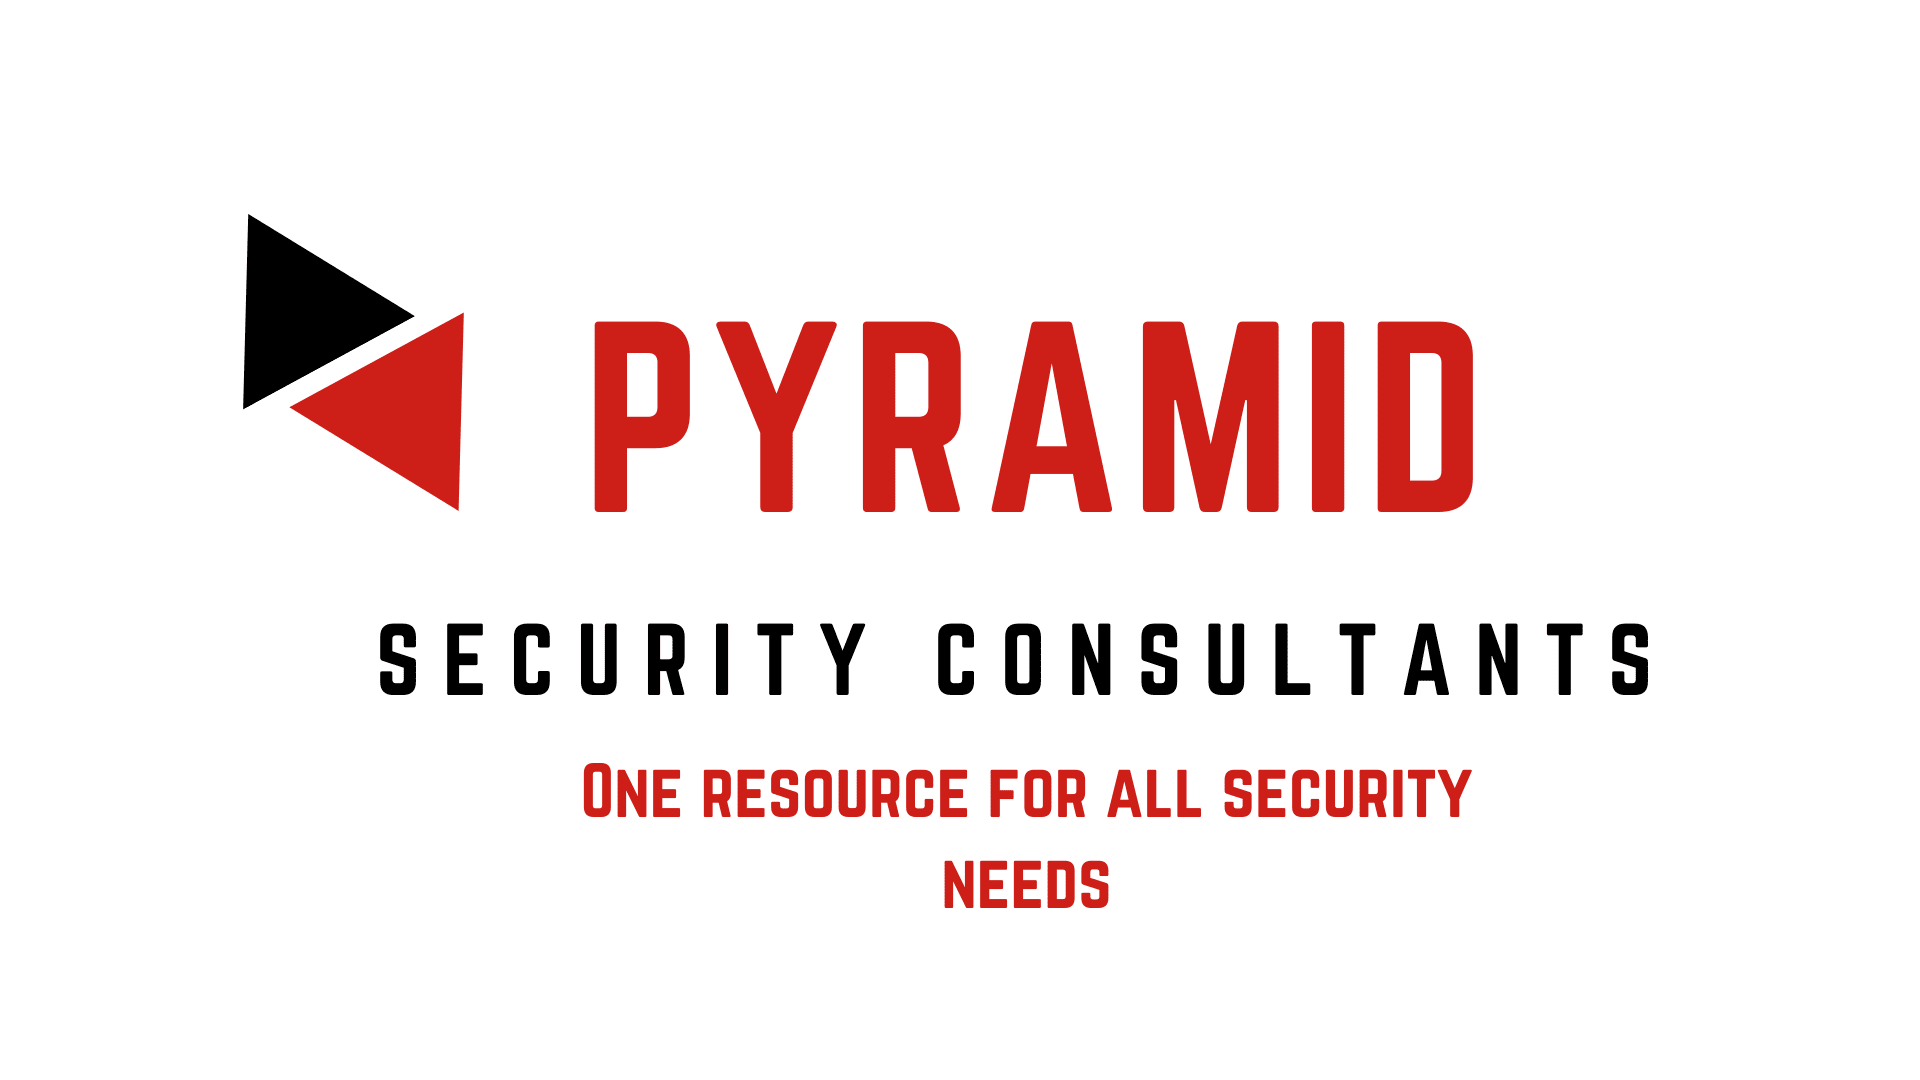 Pyramid Security Consultants